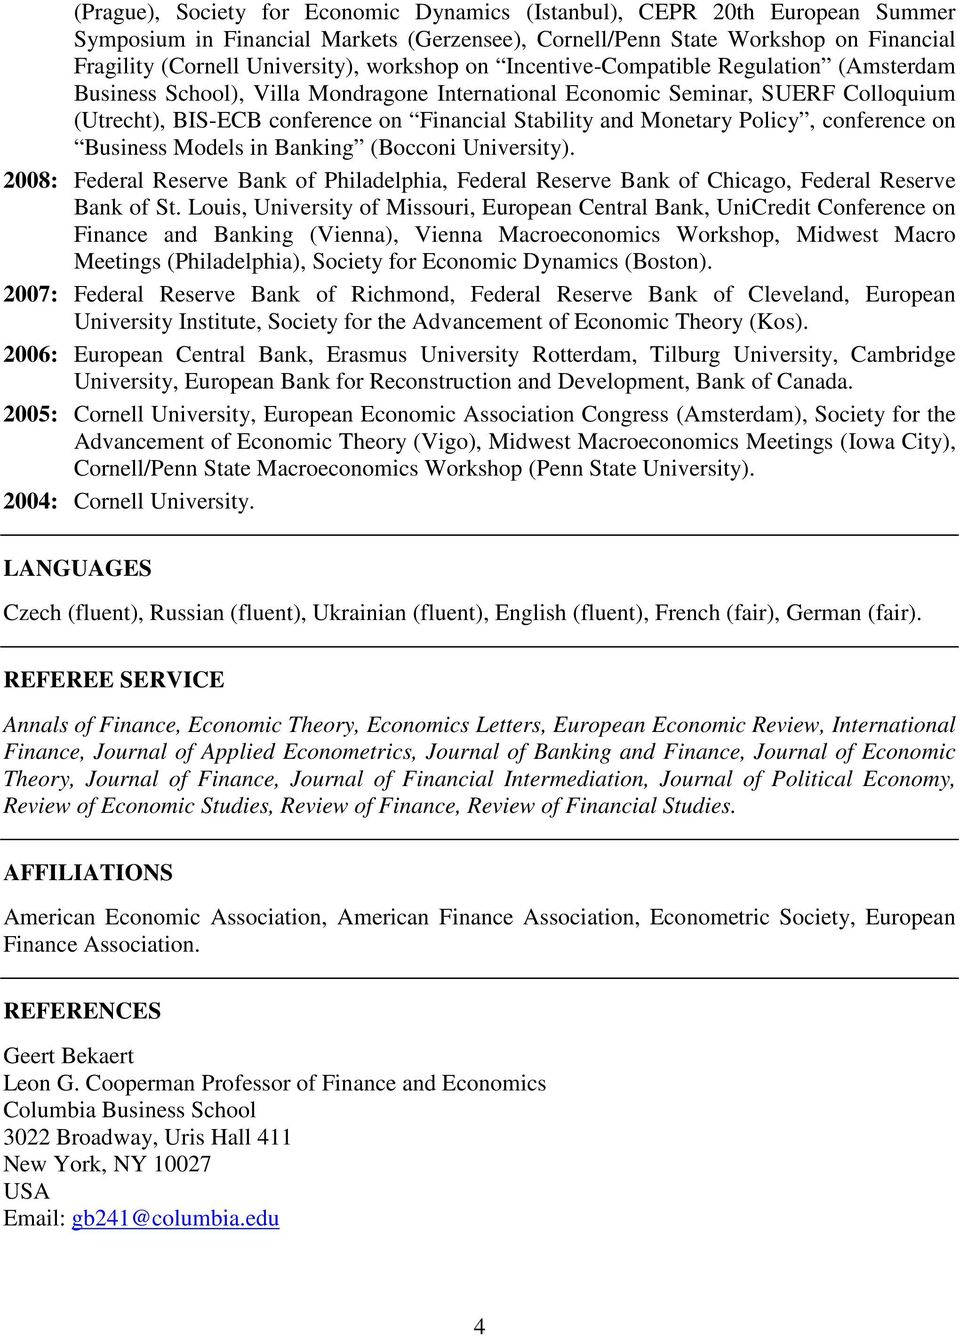 Monetary Policy, conference on Business Models in Banking (Bocconi University). 2008: Federal Reserve Bank of Philadelphia, Federal Reserve Bank of Chicago, Federal Reserve Bank of St.